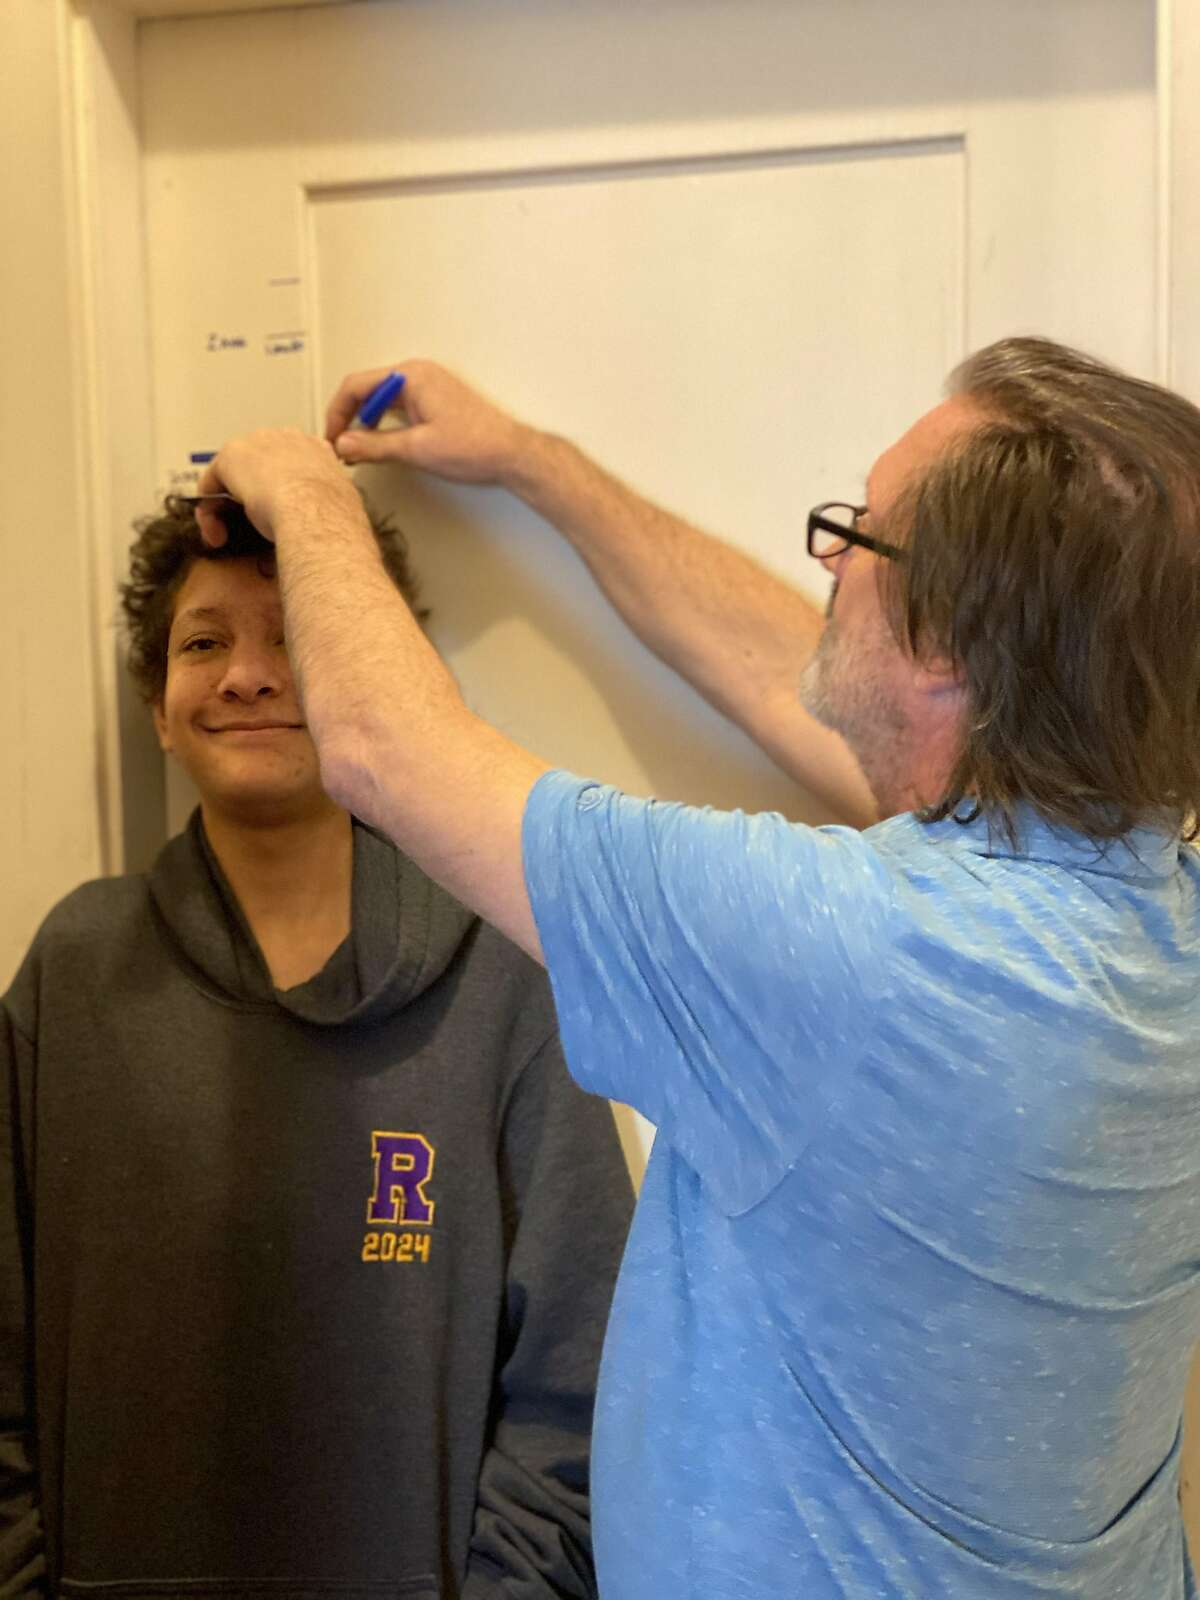 Aidan Fisher-Paulson gets his height measured by his father, Brian, during the family's annual Talling of the Boys on January 1, 2021.